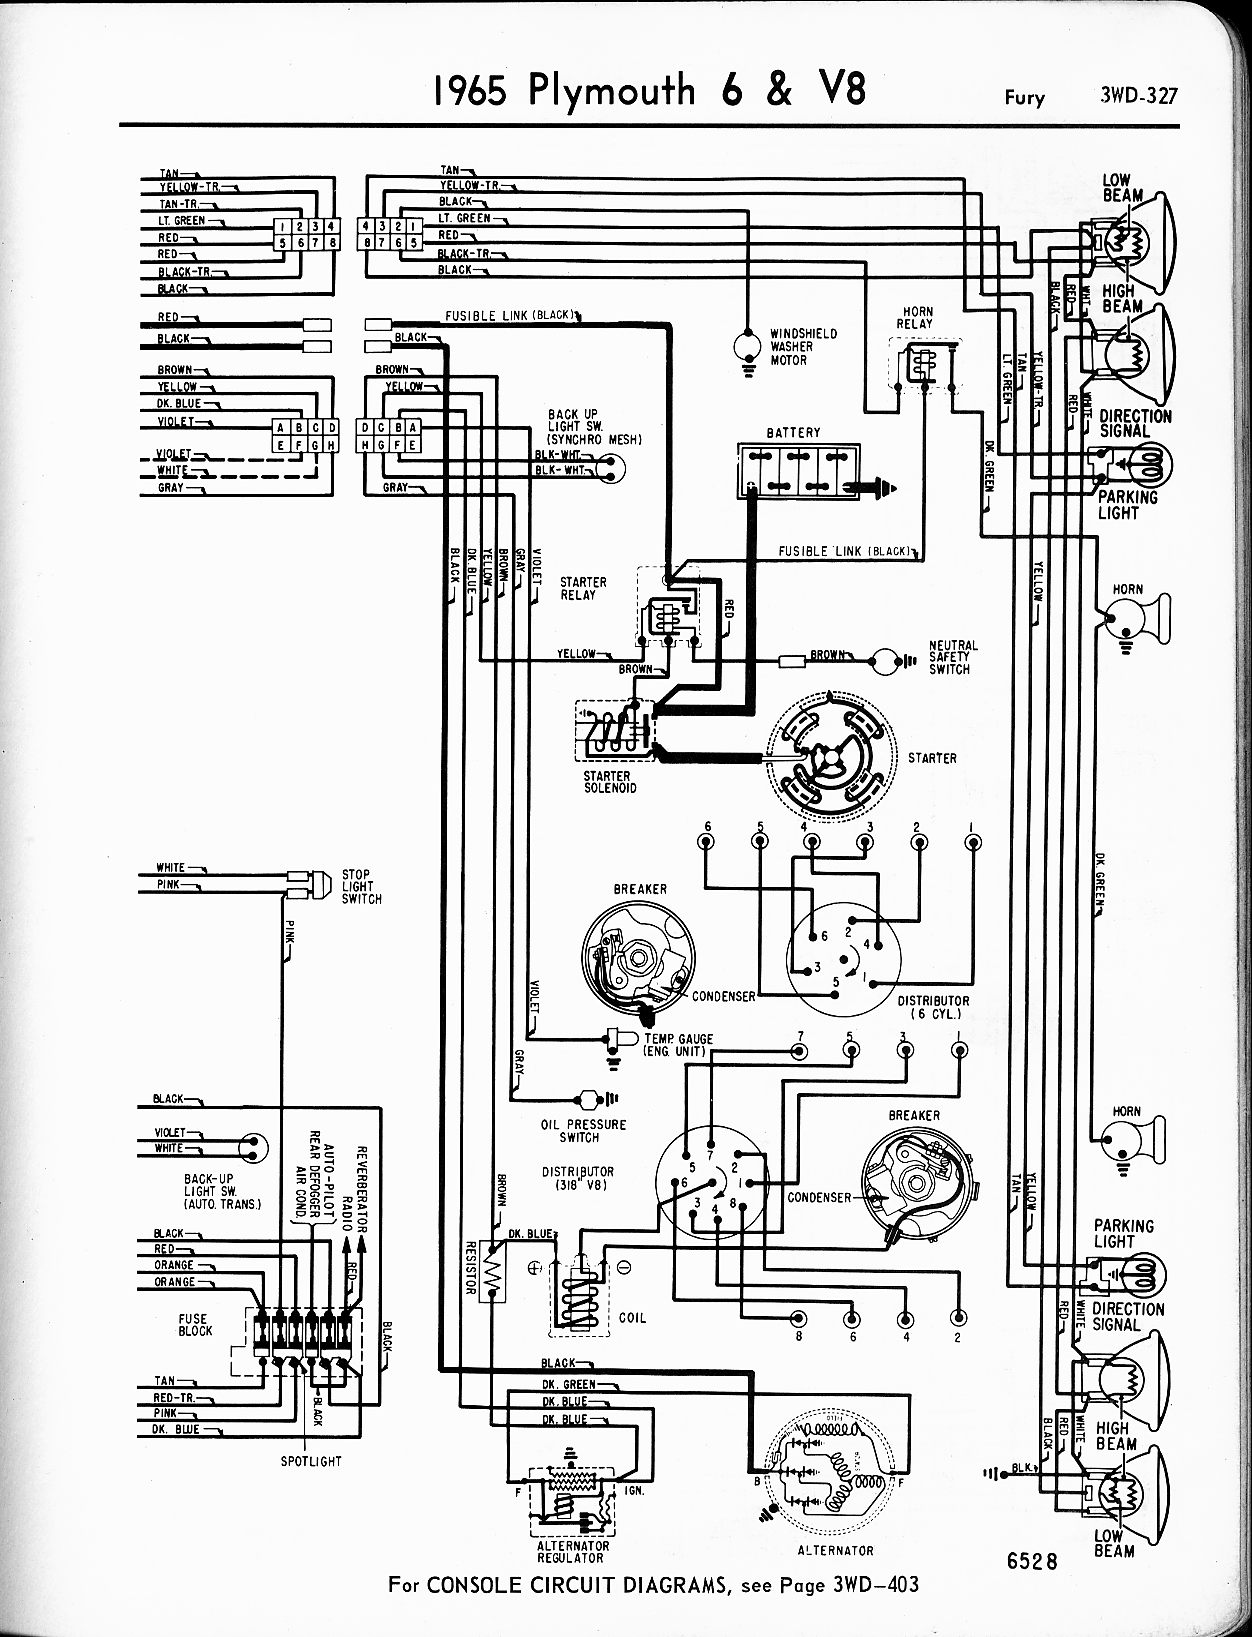 Outstanding 1951 Ford Wiper Diagram Wiring Diagram Database Ranpur Mohammedshrine Wiring Digital Resources Ranpurmohammedshrineorg